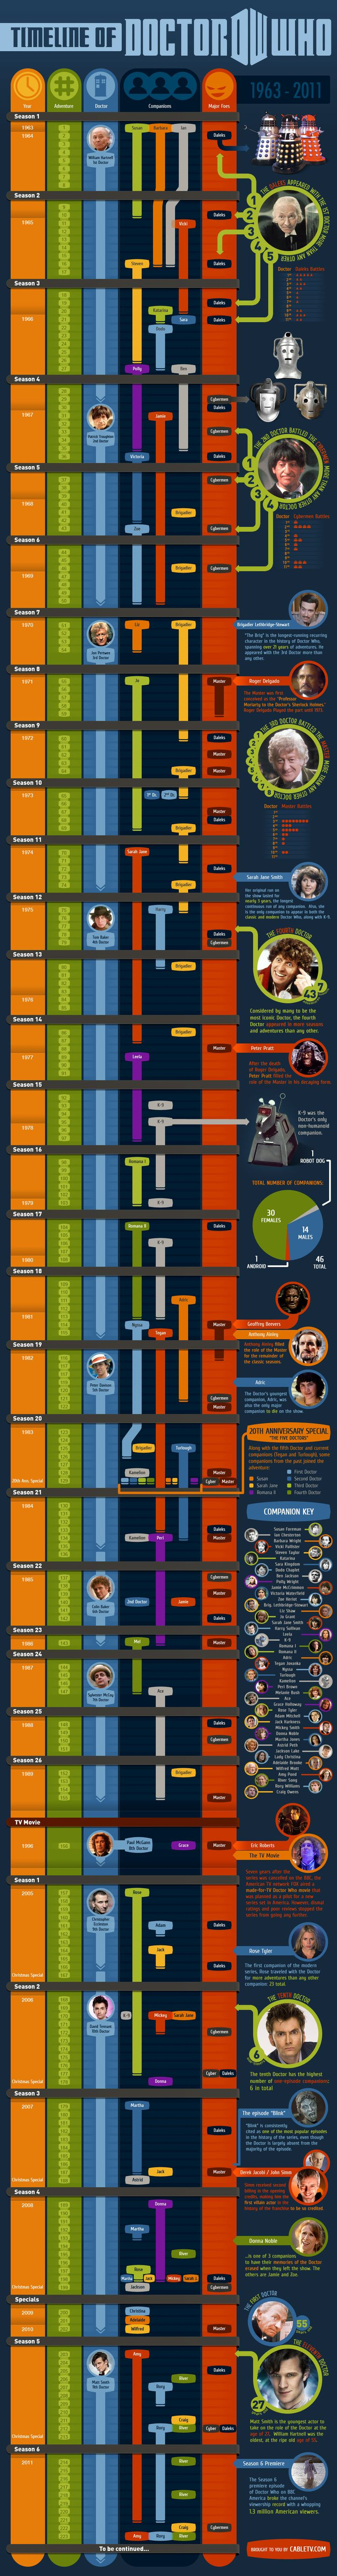 50 Years of Doctor Who Infographic #TVSERIES